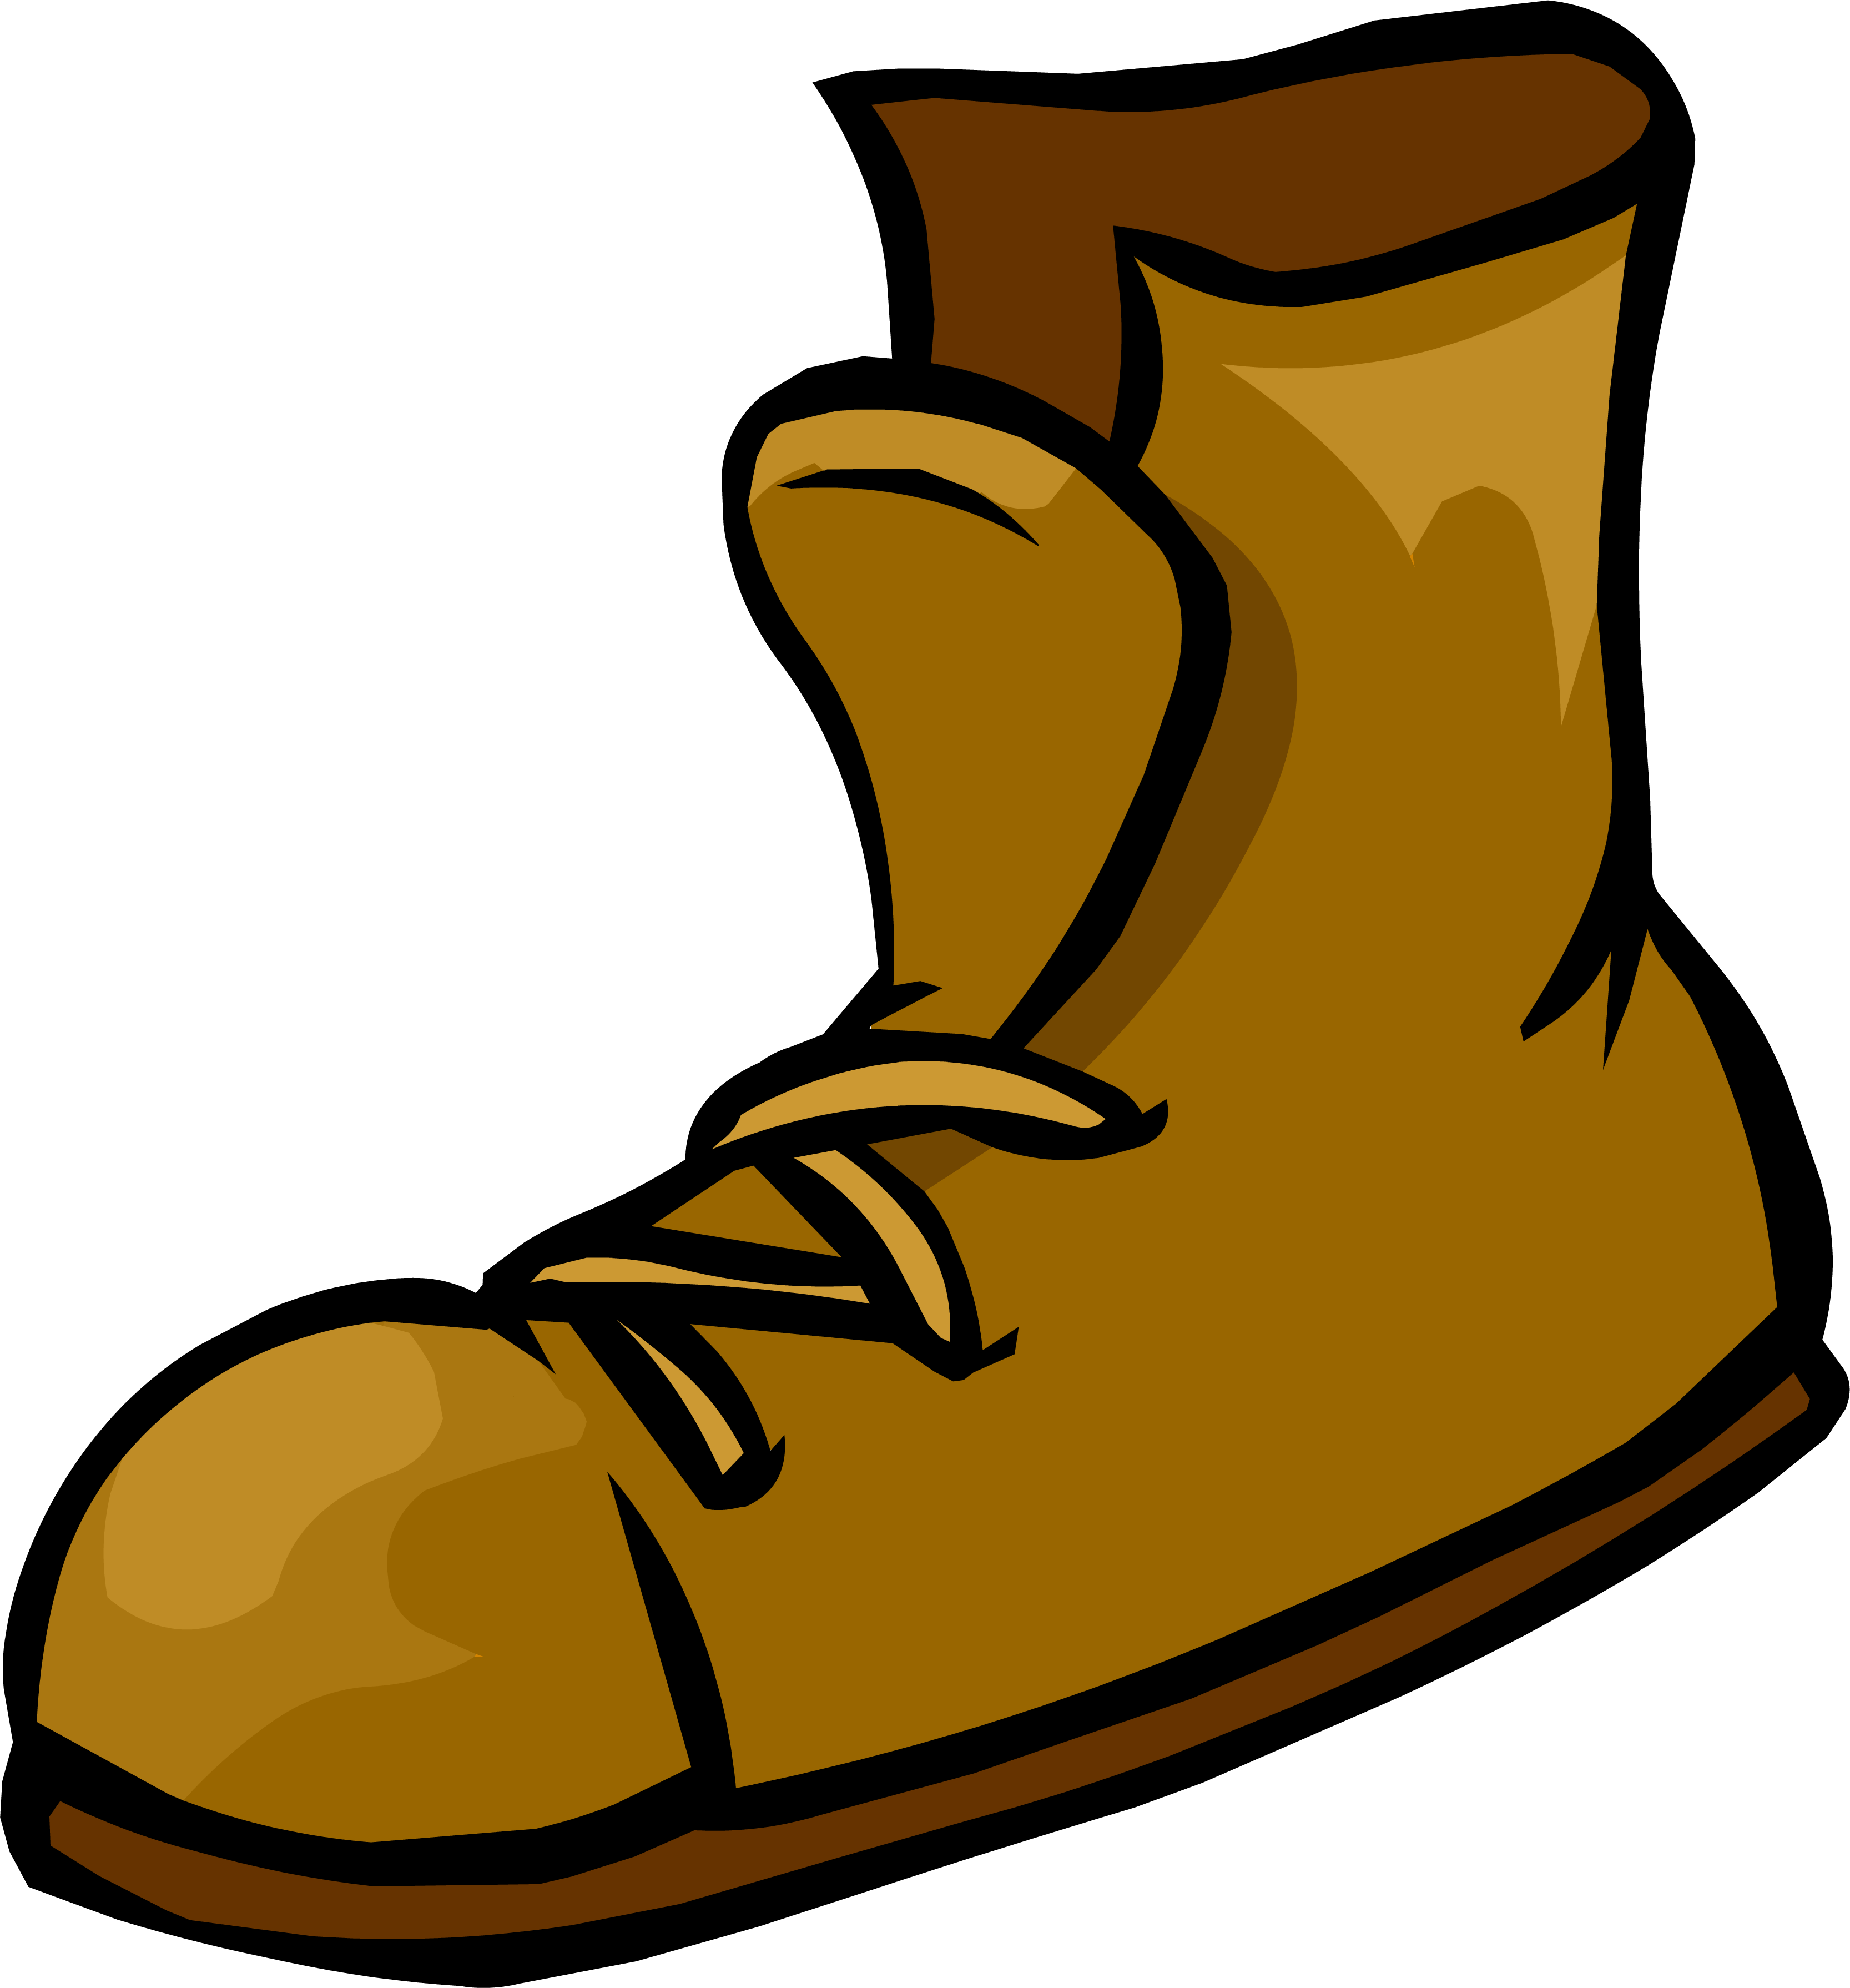 graphic transparent library Image png club penguin. Boots clipart fishing boot